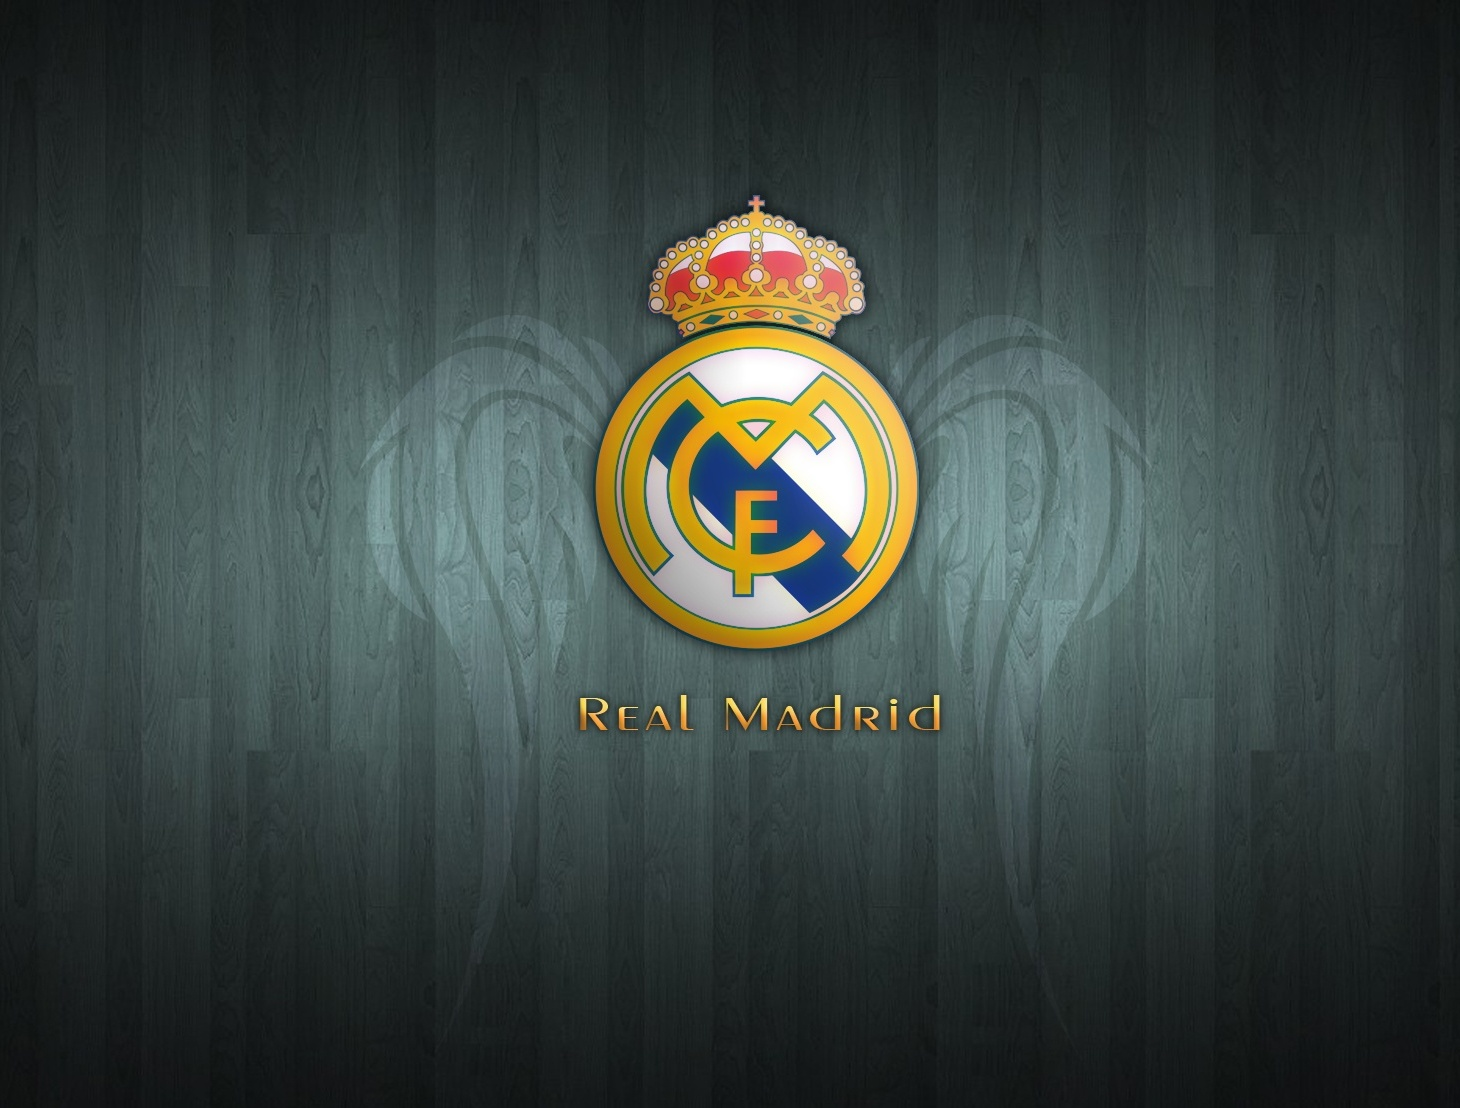 real madrid logo wallpaper Real Madrid Masaüstü HD Resimleri